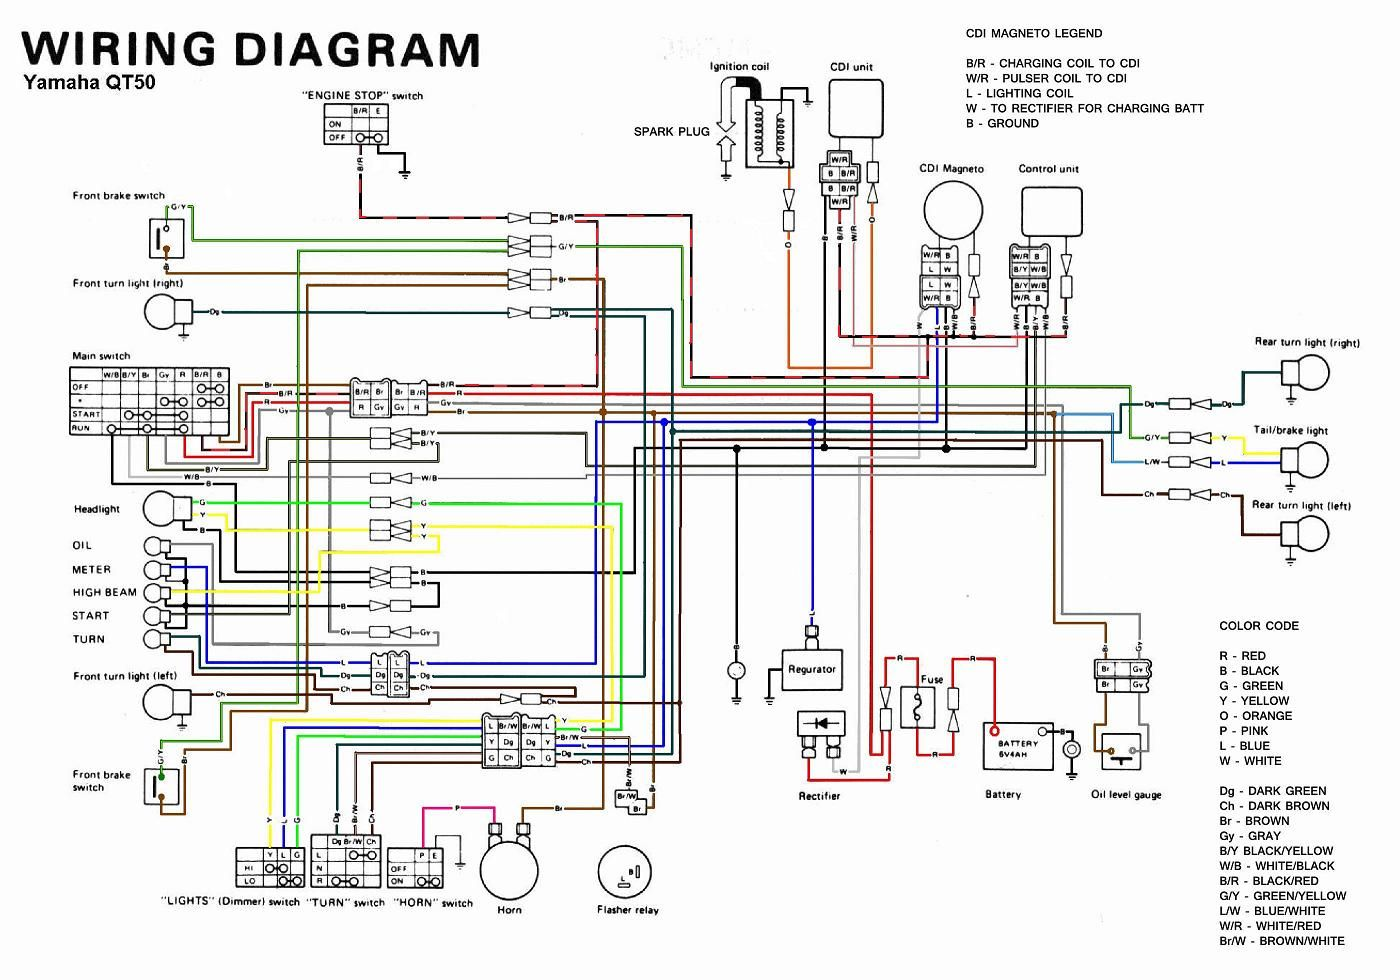 Yamaha Qt50 Wiring Diagram Jpg 1400 980 Yamaha Motorcycle Wiring Electrical Wiring Diagram